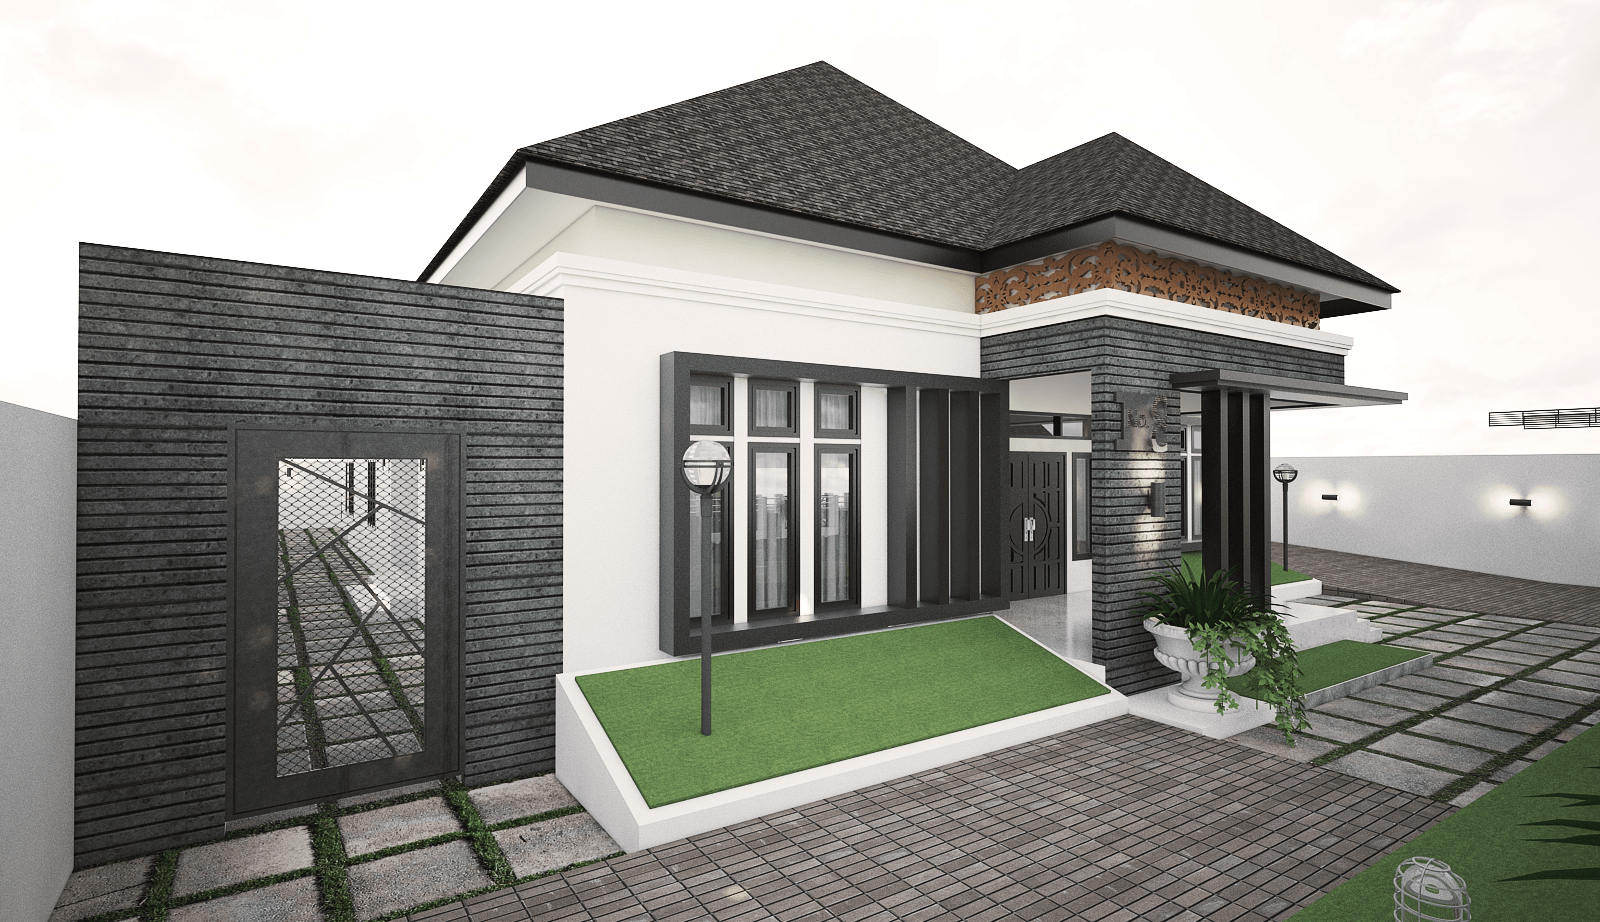 Yay Architect Concept Classic Modern House Bireun, Aceh, Indonesia Bireun, Aceh, Indonesia F   28378